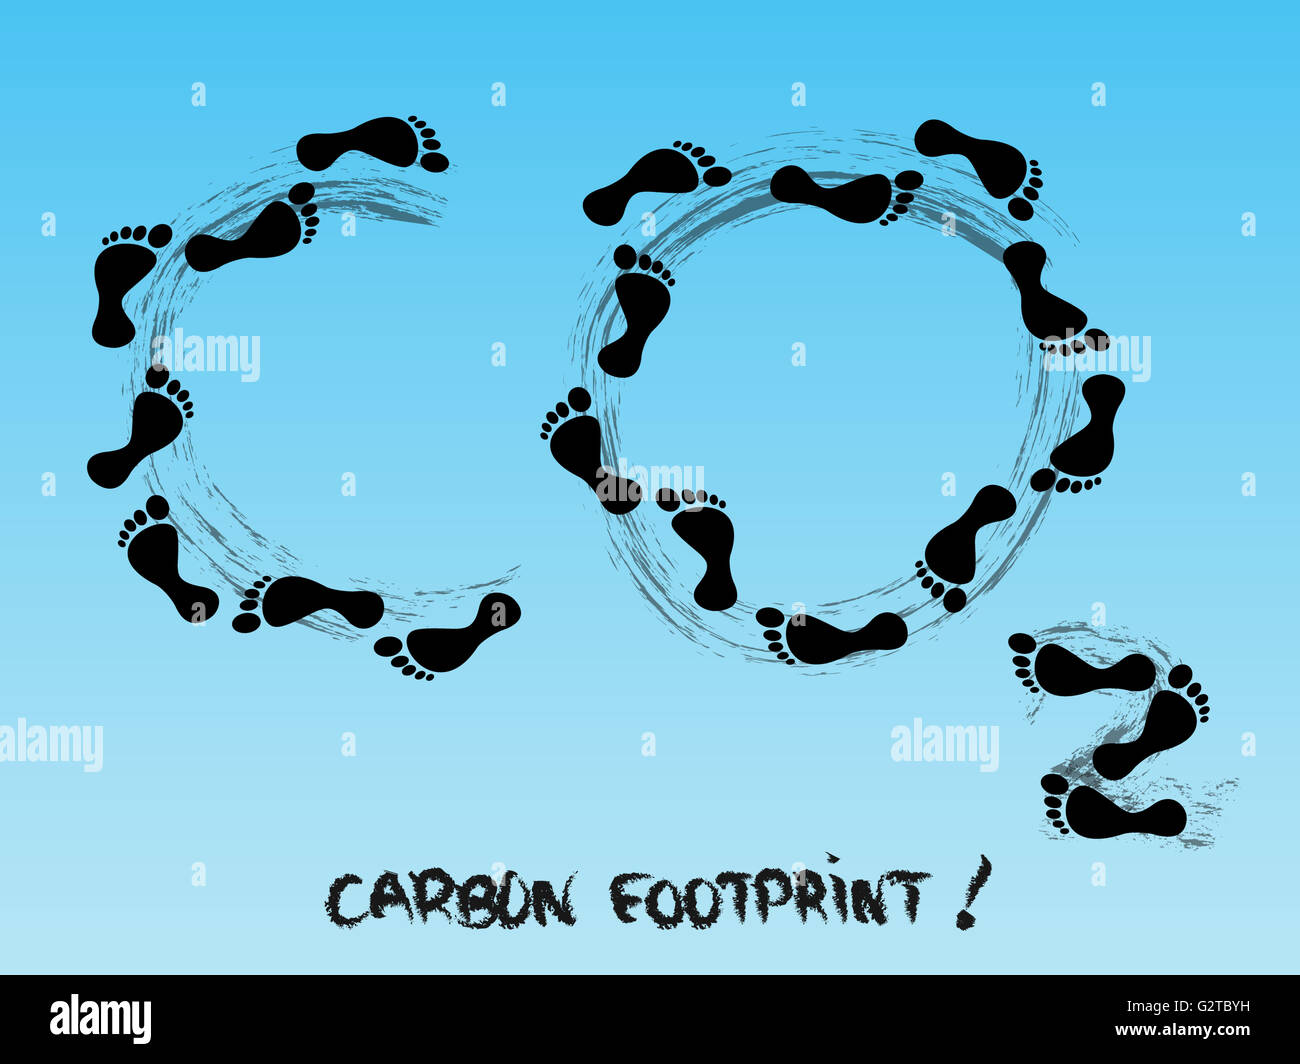 Carbon footprint symbol in the sky - Stock Image